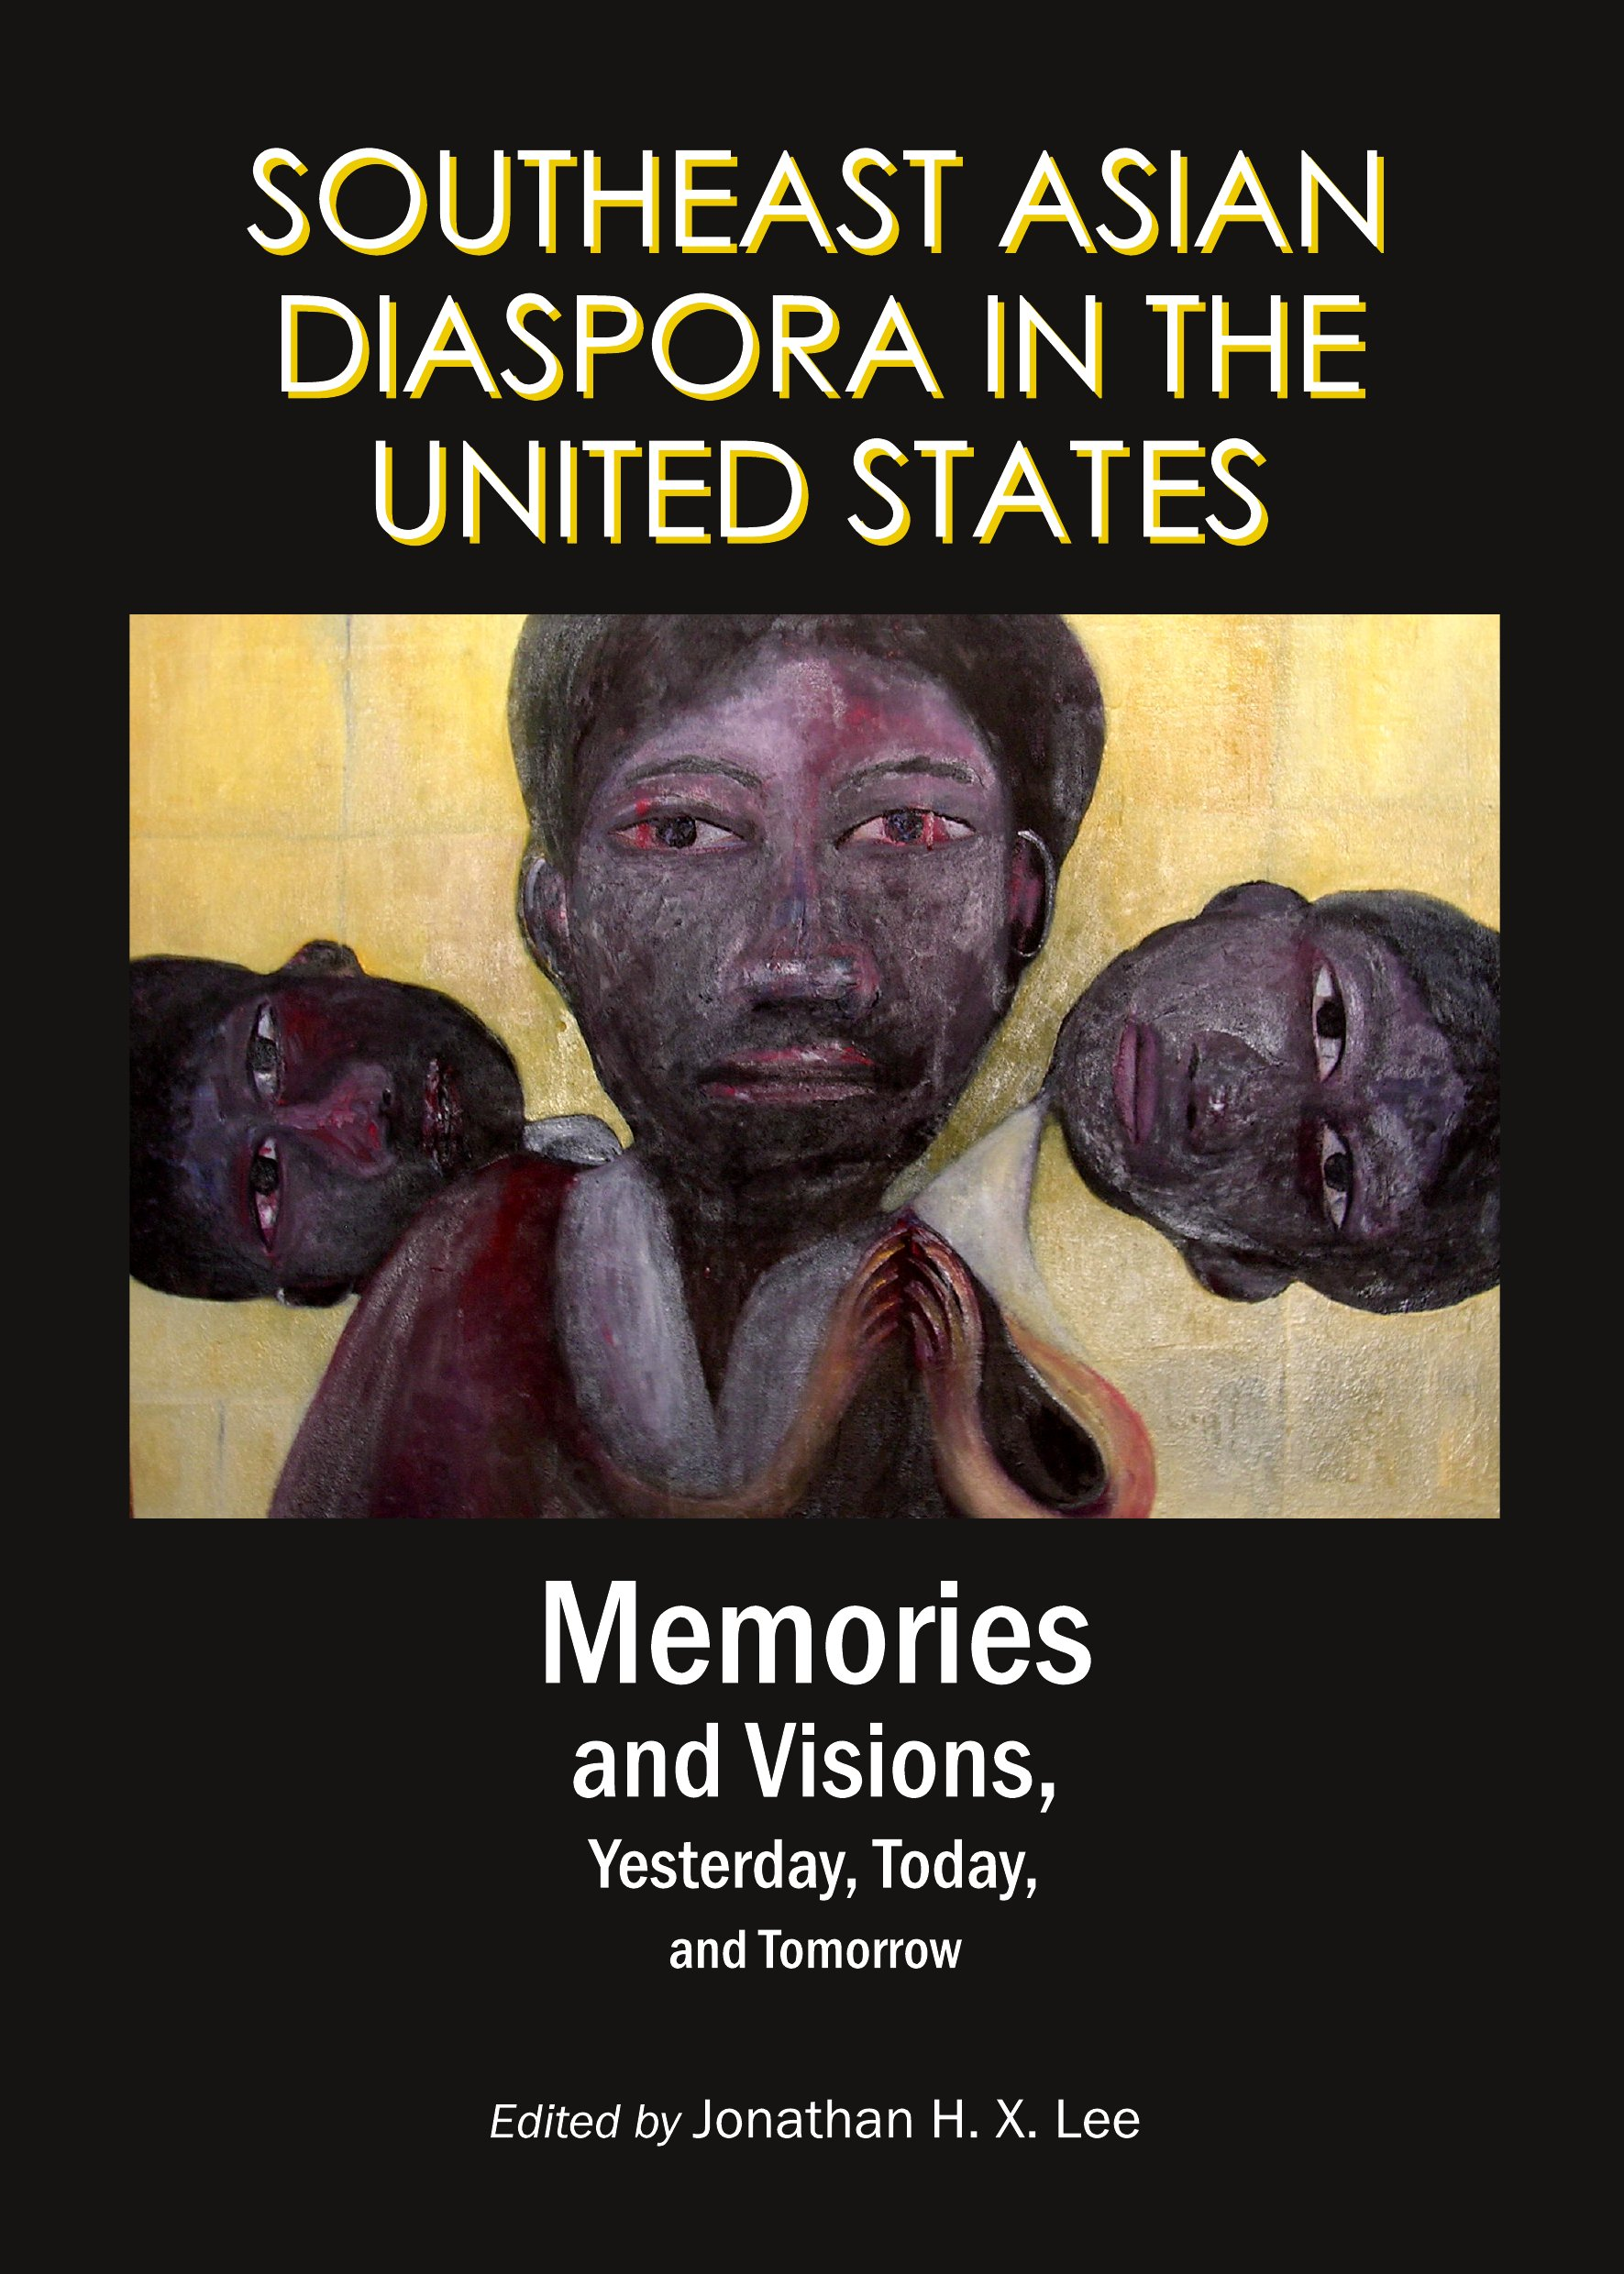 Southeast Asian Diaspora in the United States: Memories and Visions, Yesterday, Today, and Tomorrow